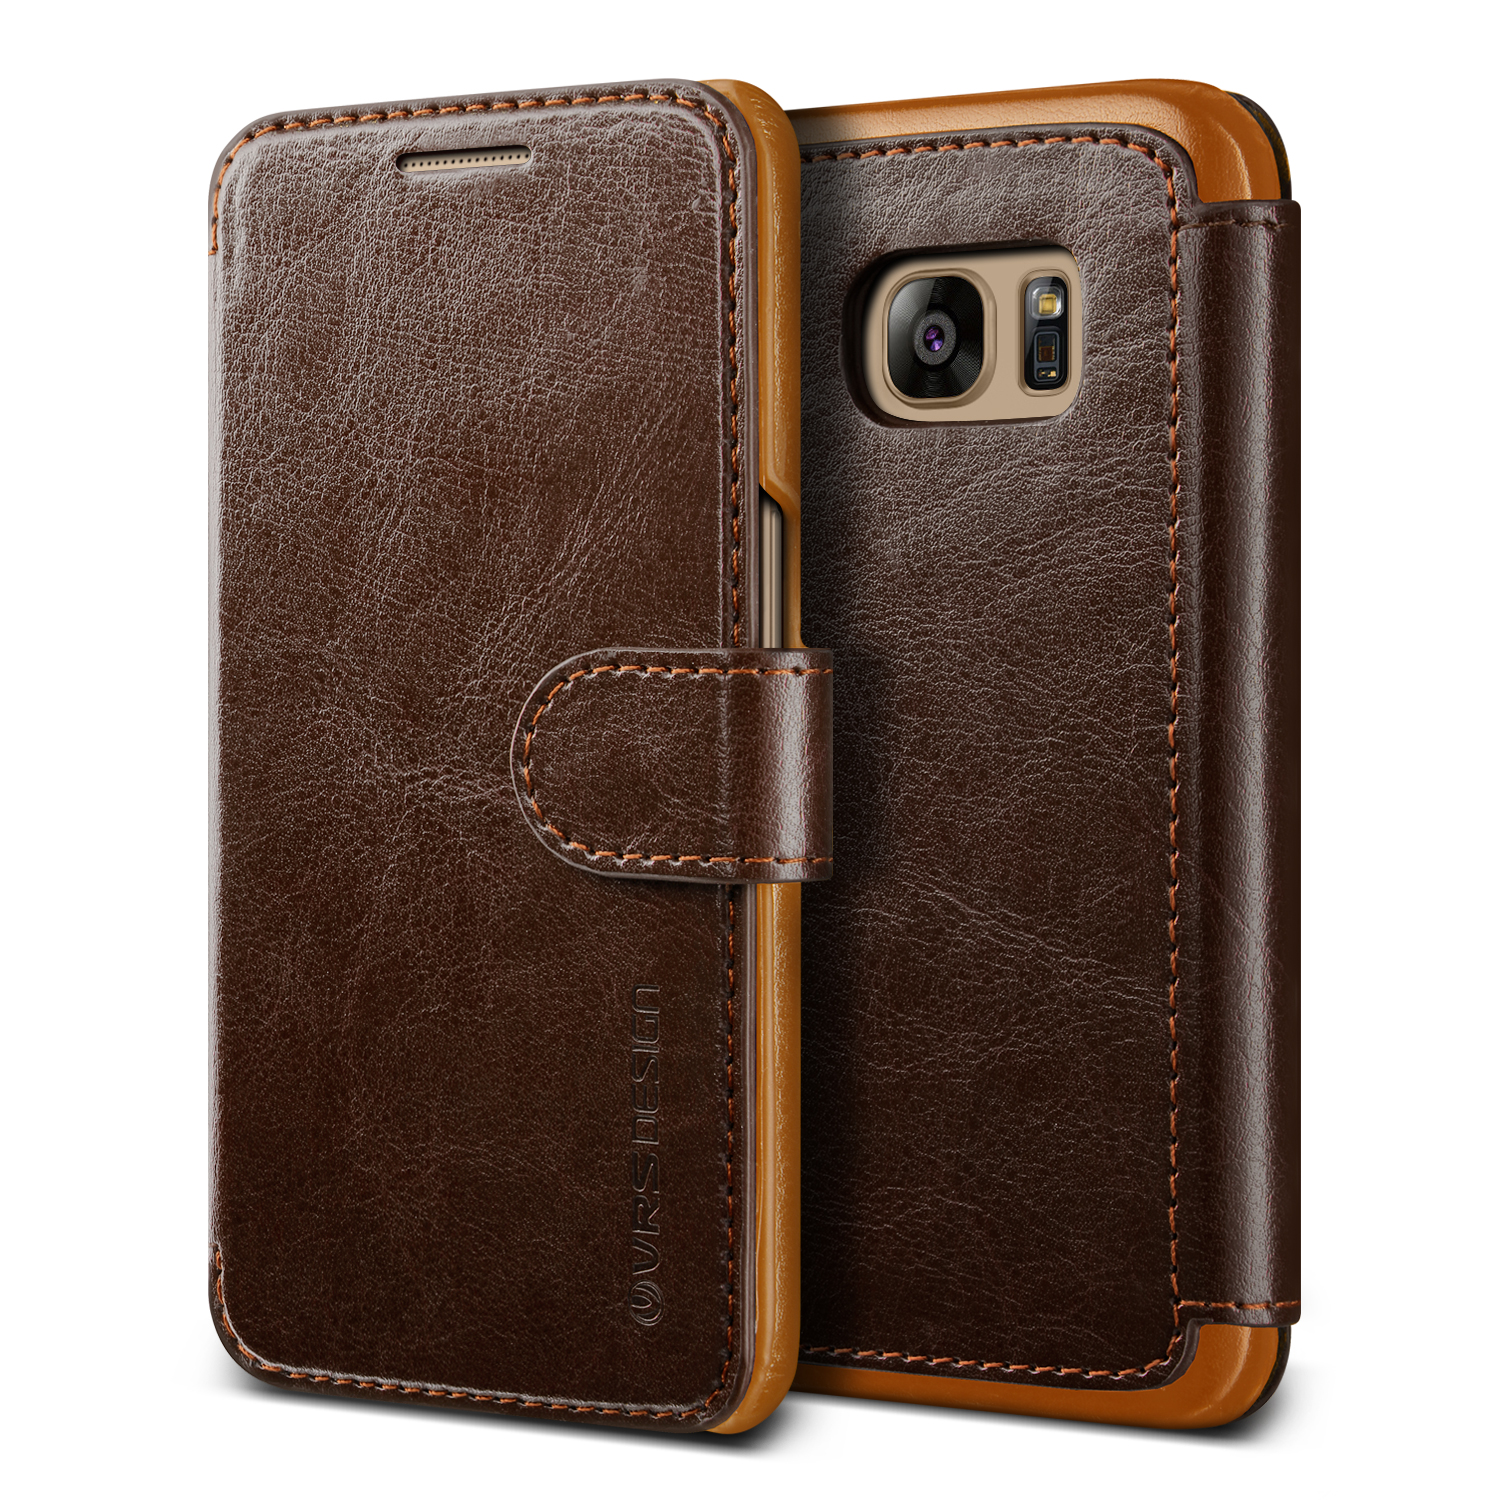 Samsung Galaxy S7 Case Cover | Premium PU Leather Wallet with Card Slots | VRS Design Layered Dandy for Samsung Galaxy S7